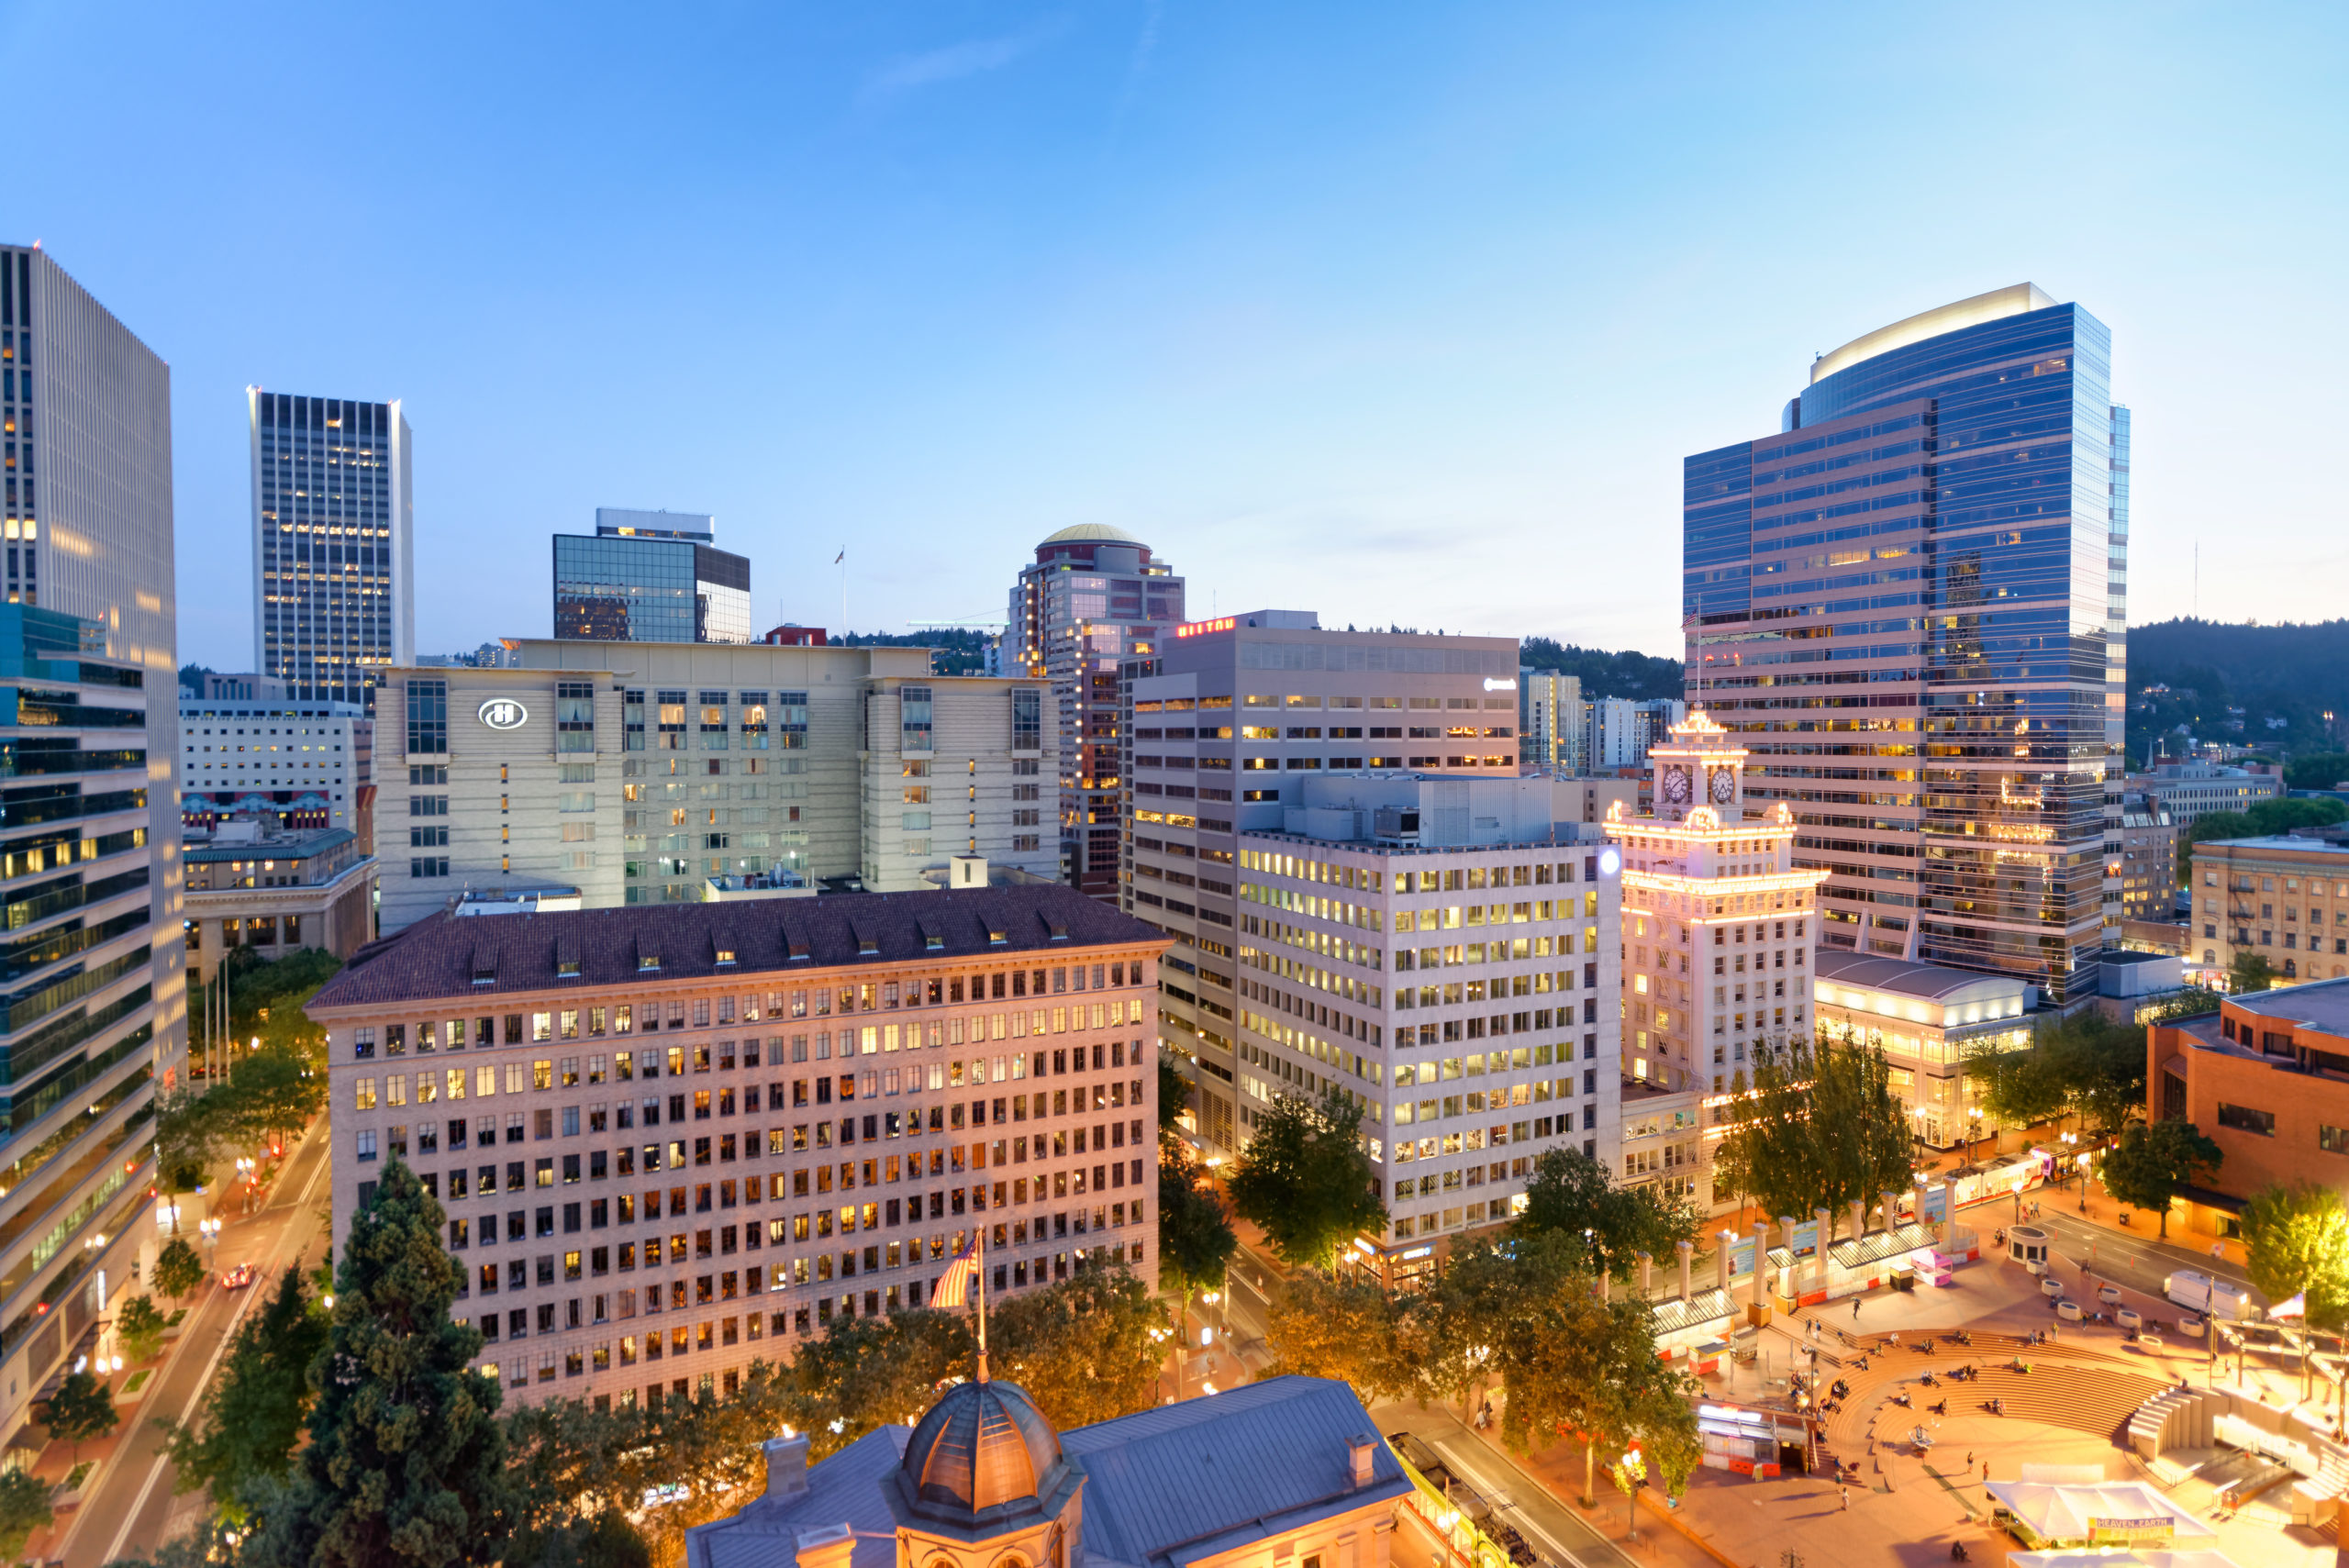 PORTLAND, OR – AUGUST 19, 2017: Aerial view of Pioneer Square at night. Portland attracts 5 million tourists annually.